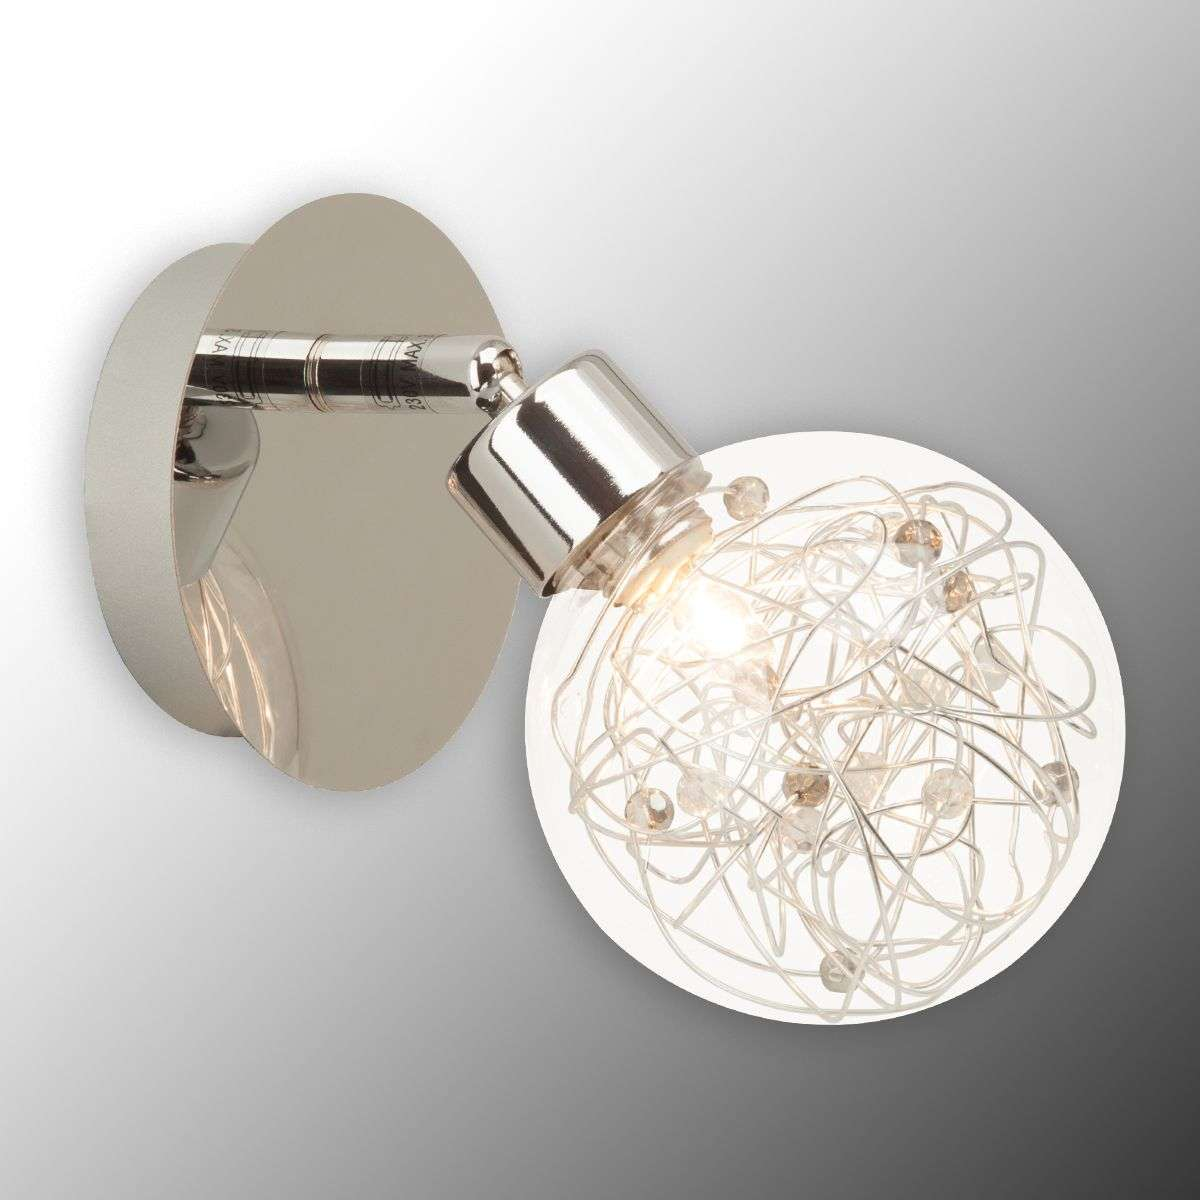 Effective wall light Joya-1509044-31